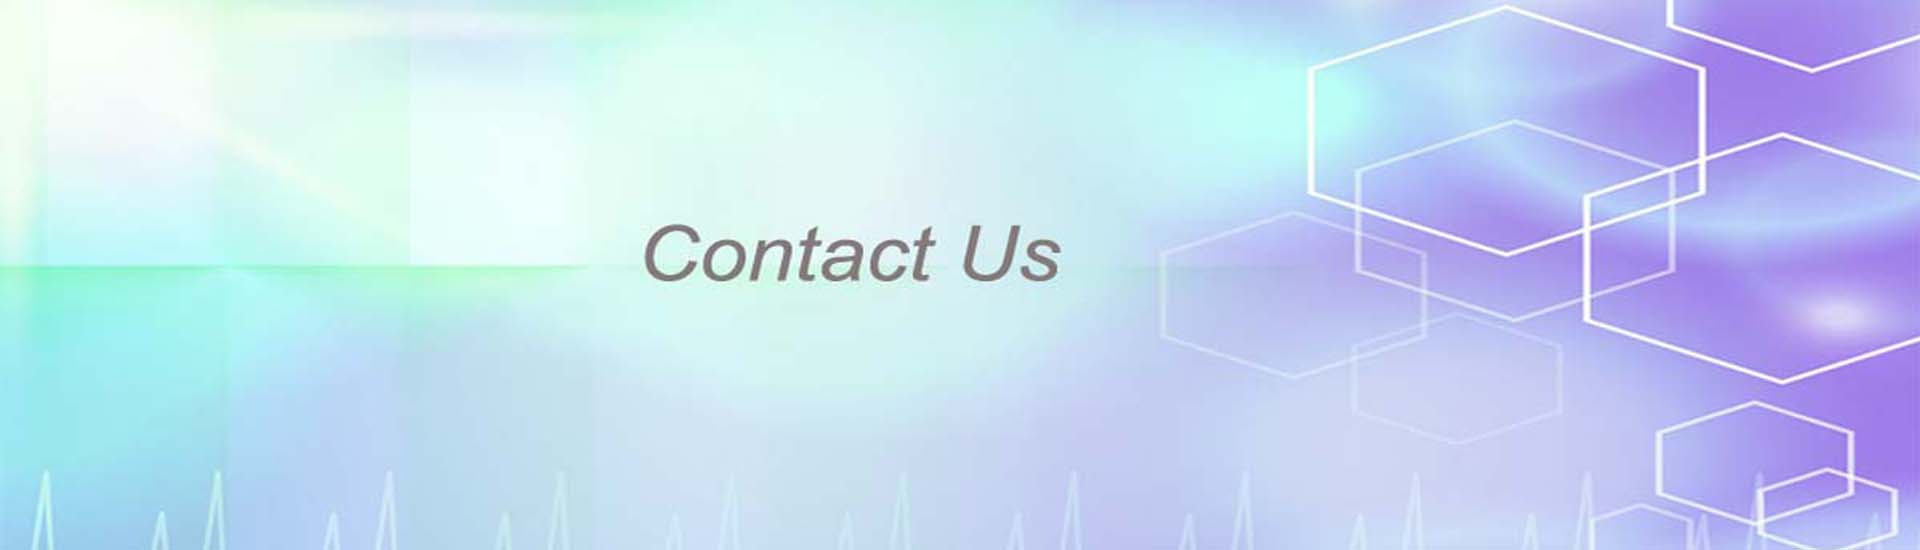 contact_